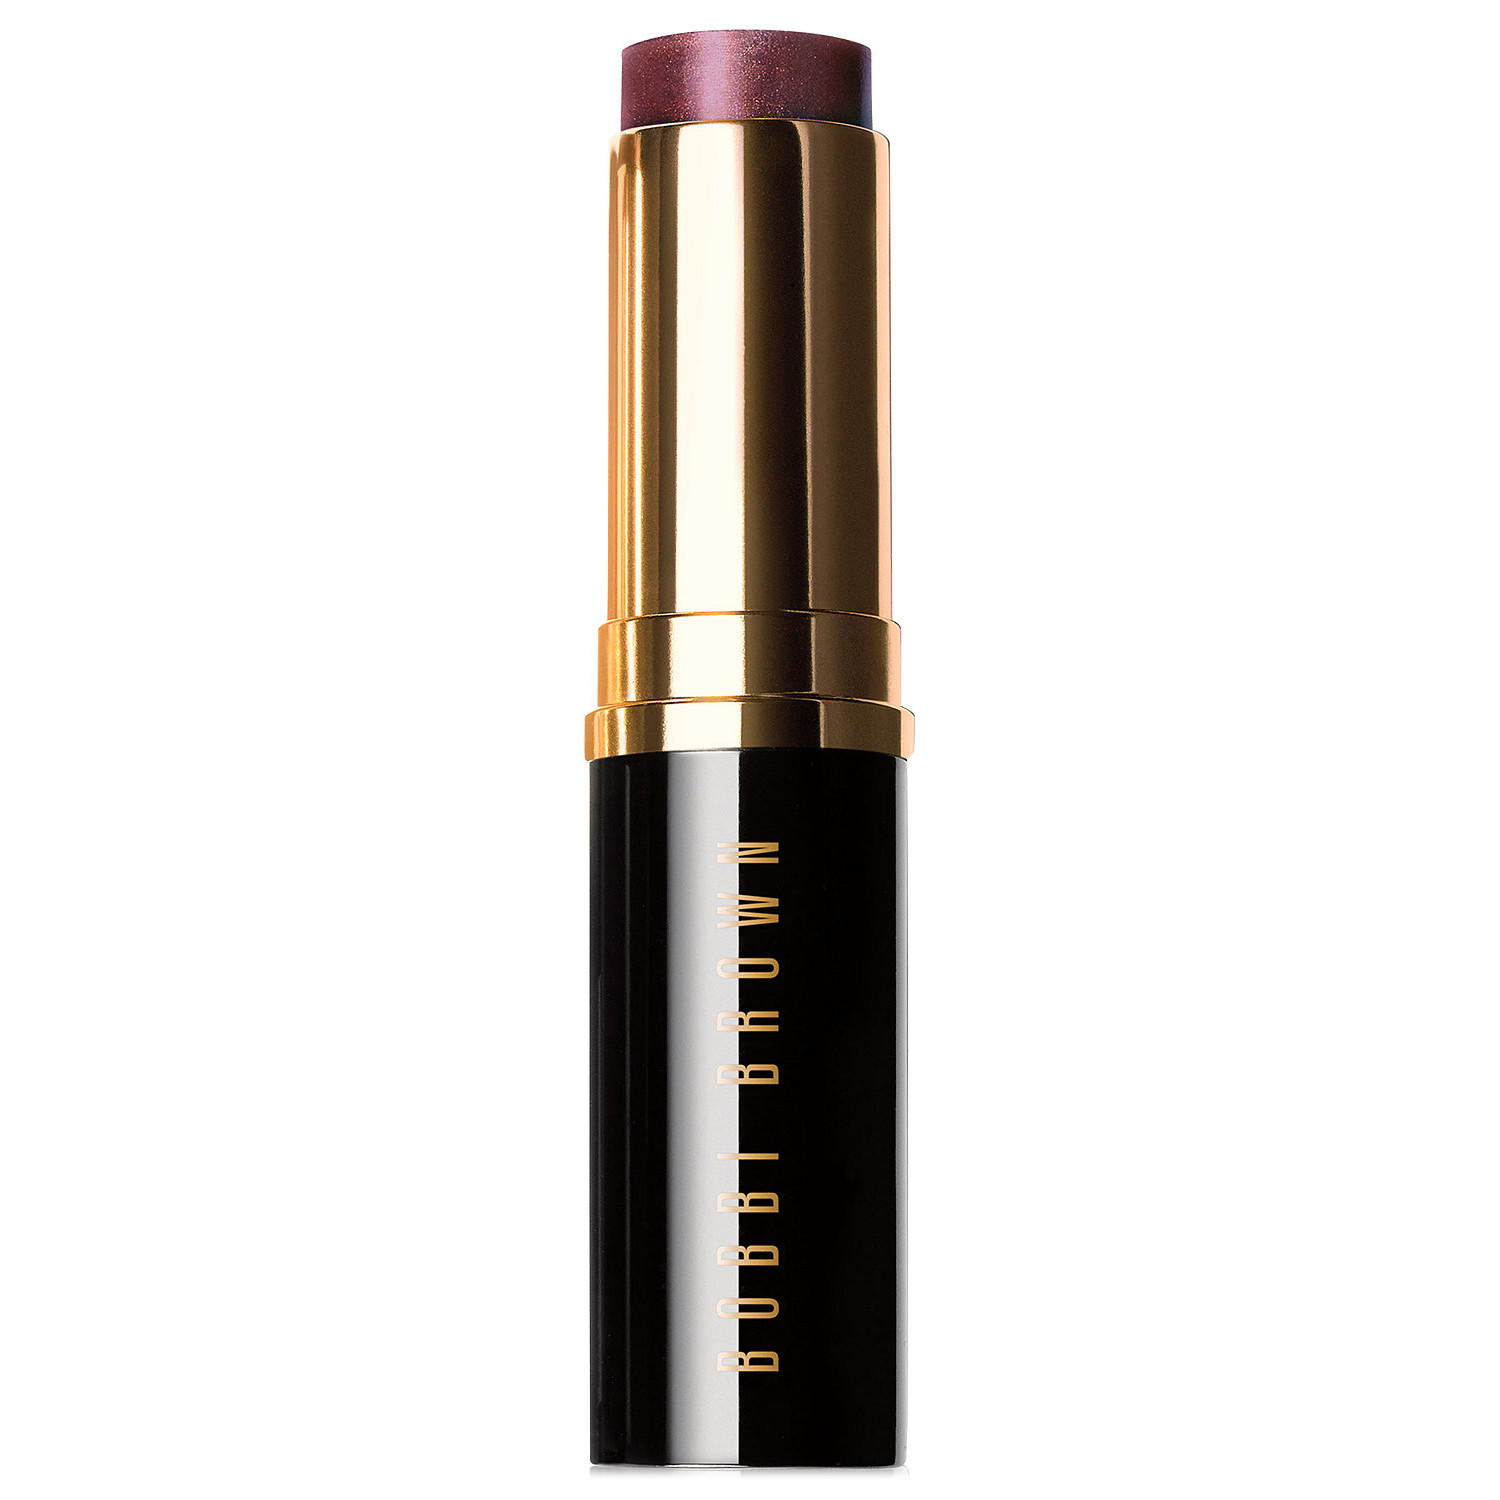 Bobbi Brown Glow Stick Island Plum